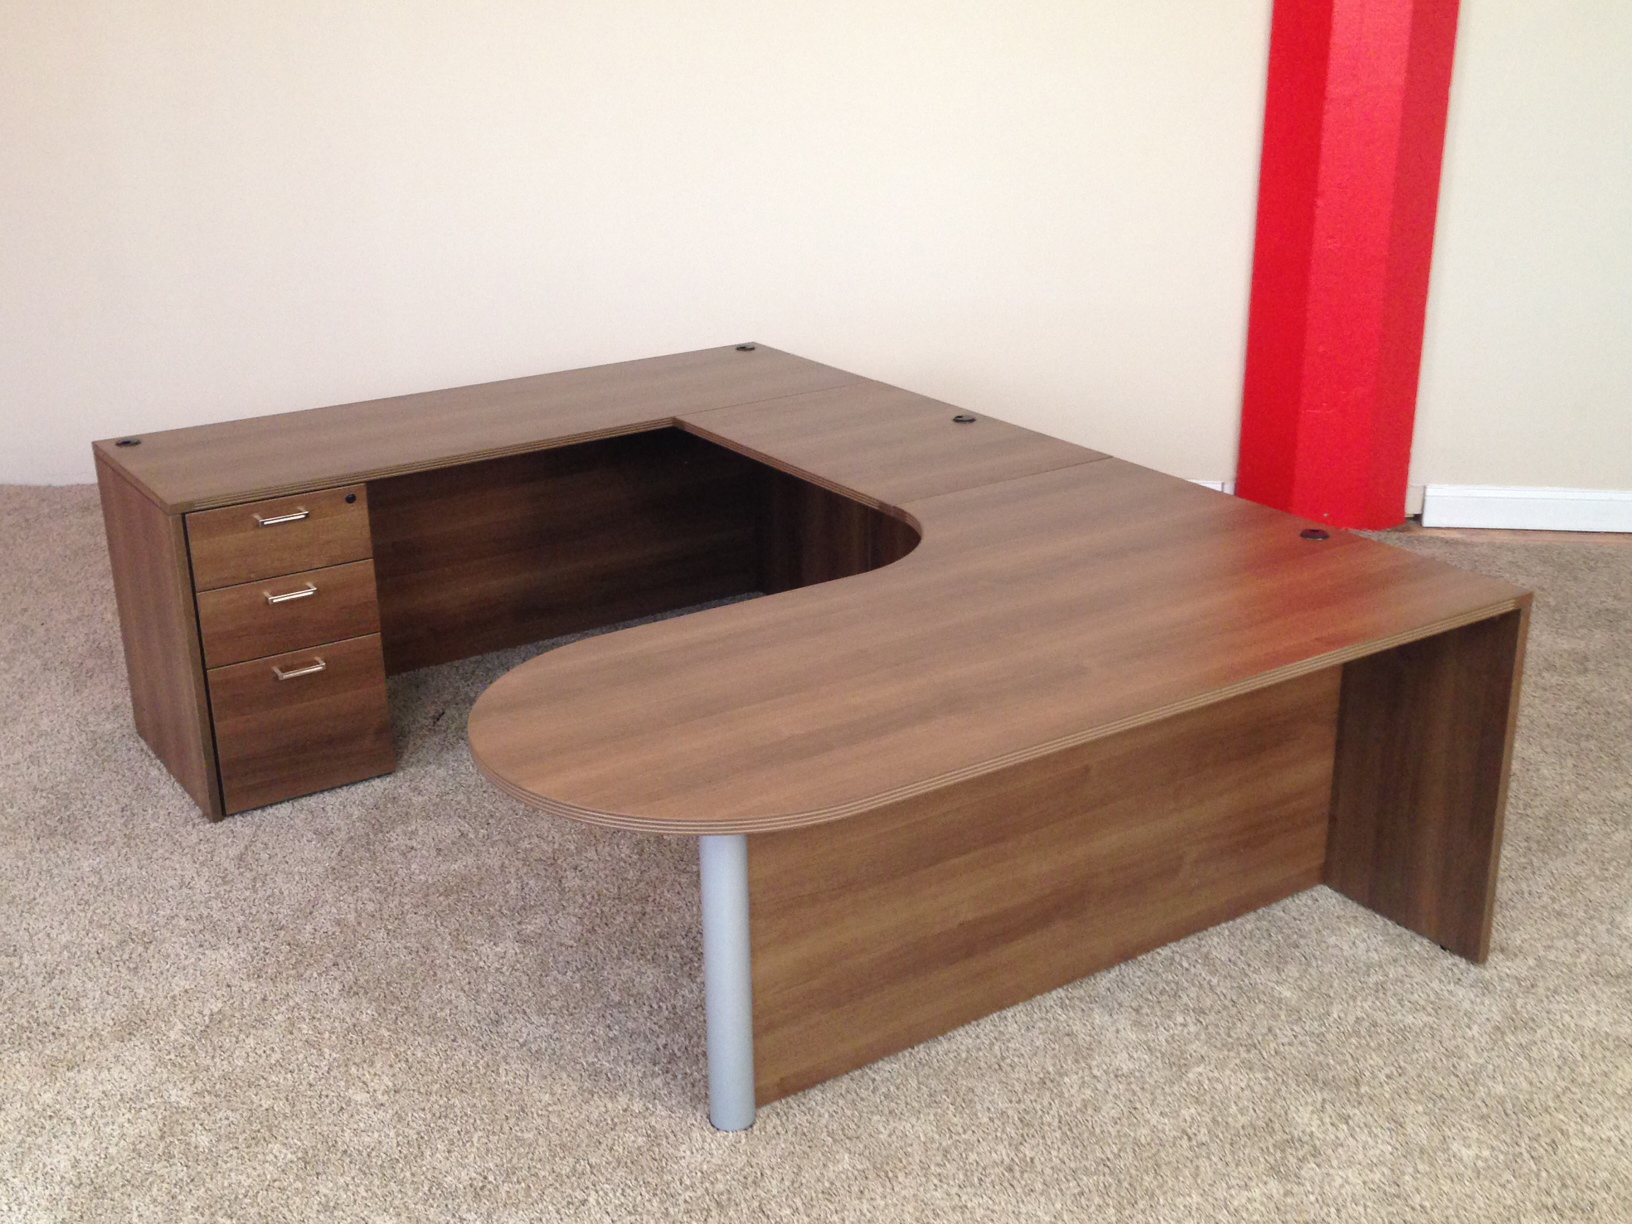 Bullet U-shaped Desk #2 Bullet Front U-Shaped Office Desks